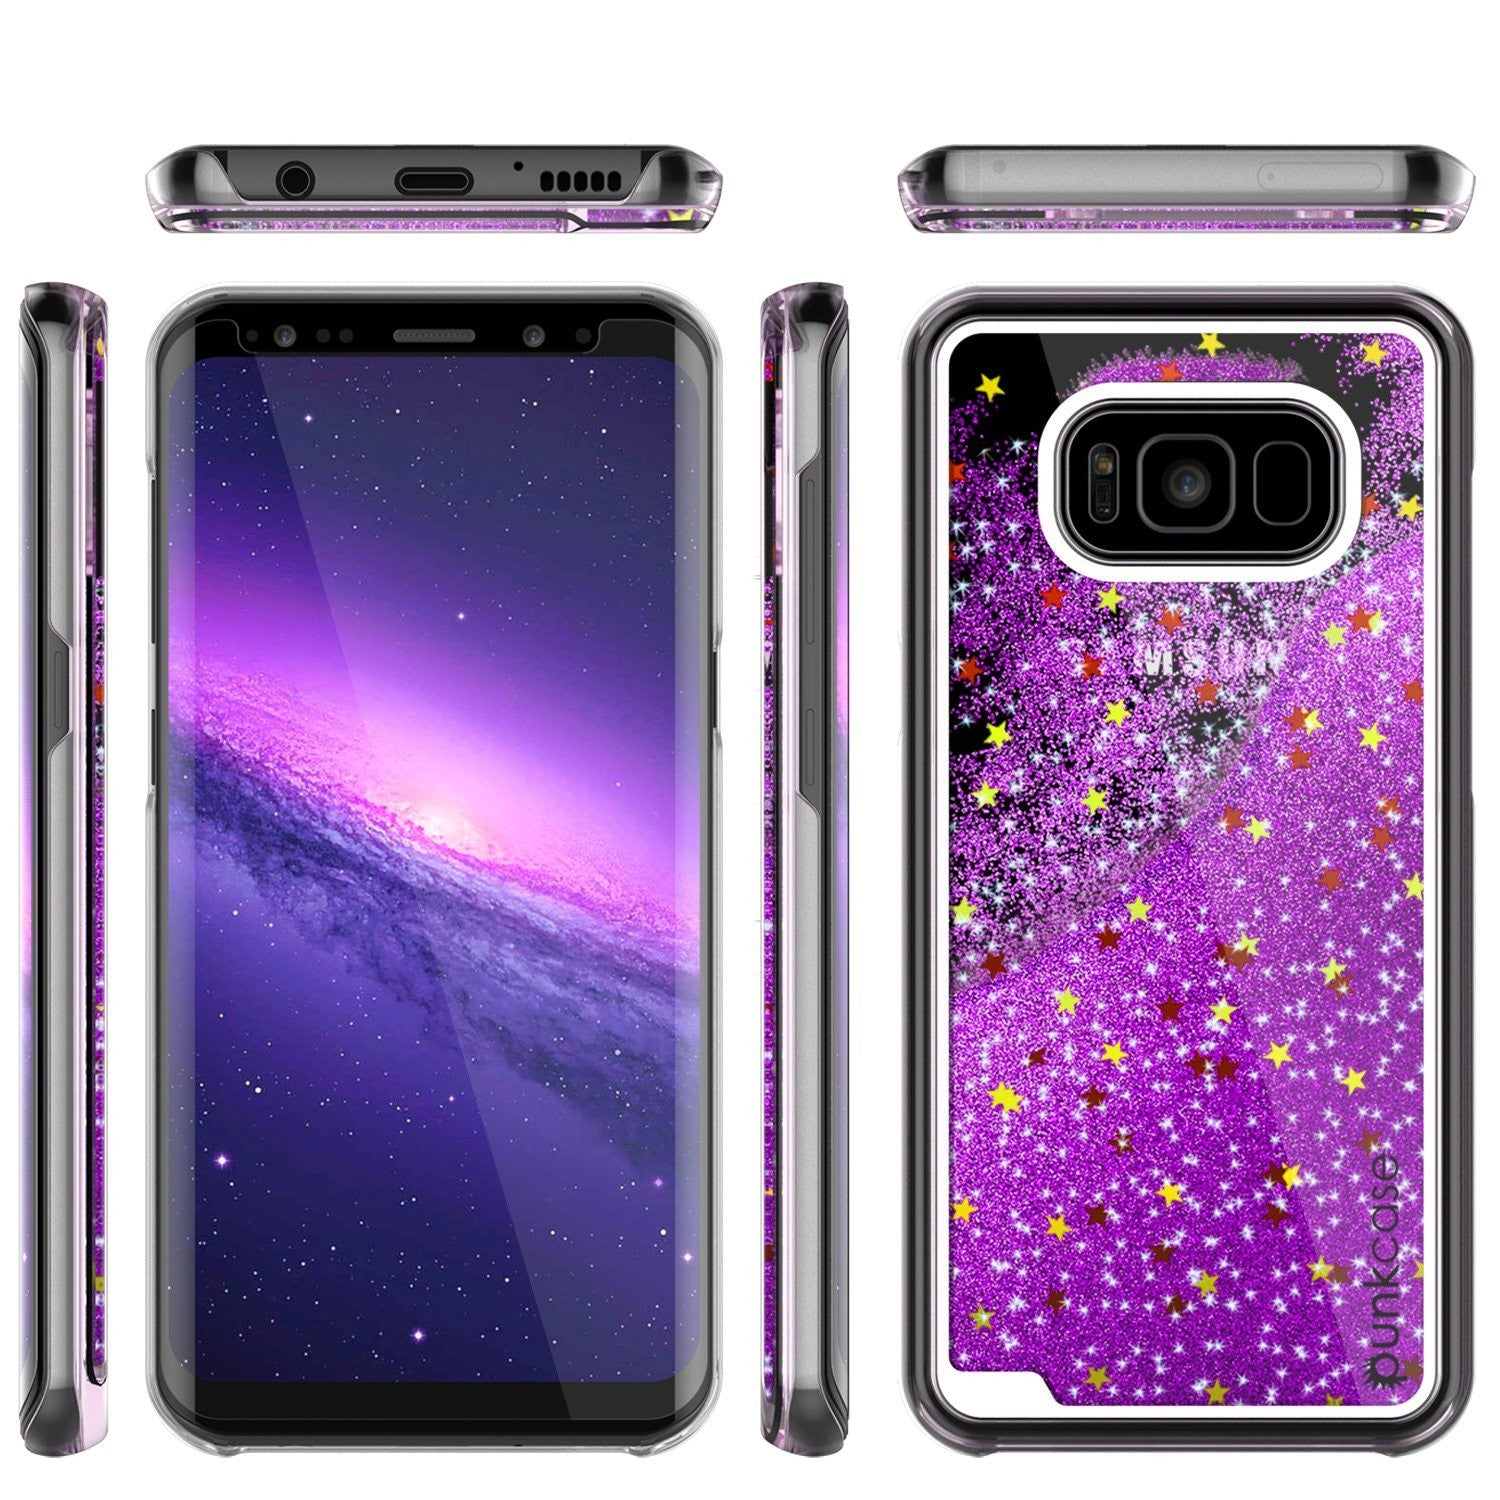 S8 Plus Case, Punkcase Liquid Purple Series, Protective Dual Layer Floating Glitter Cover